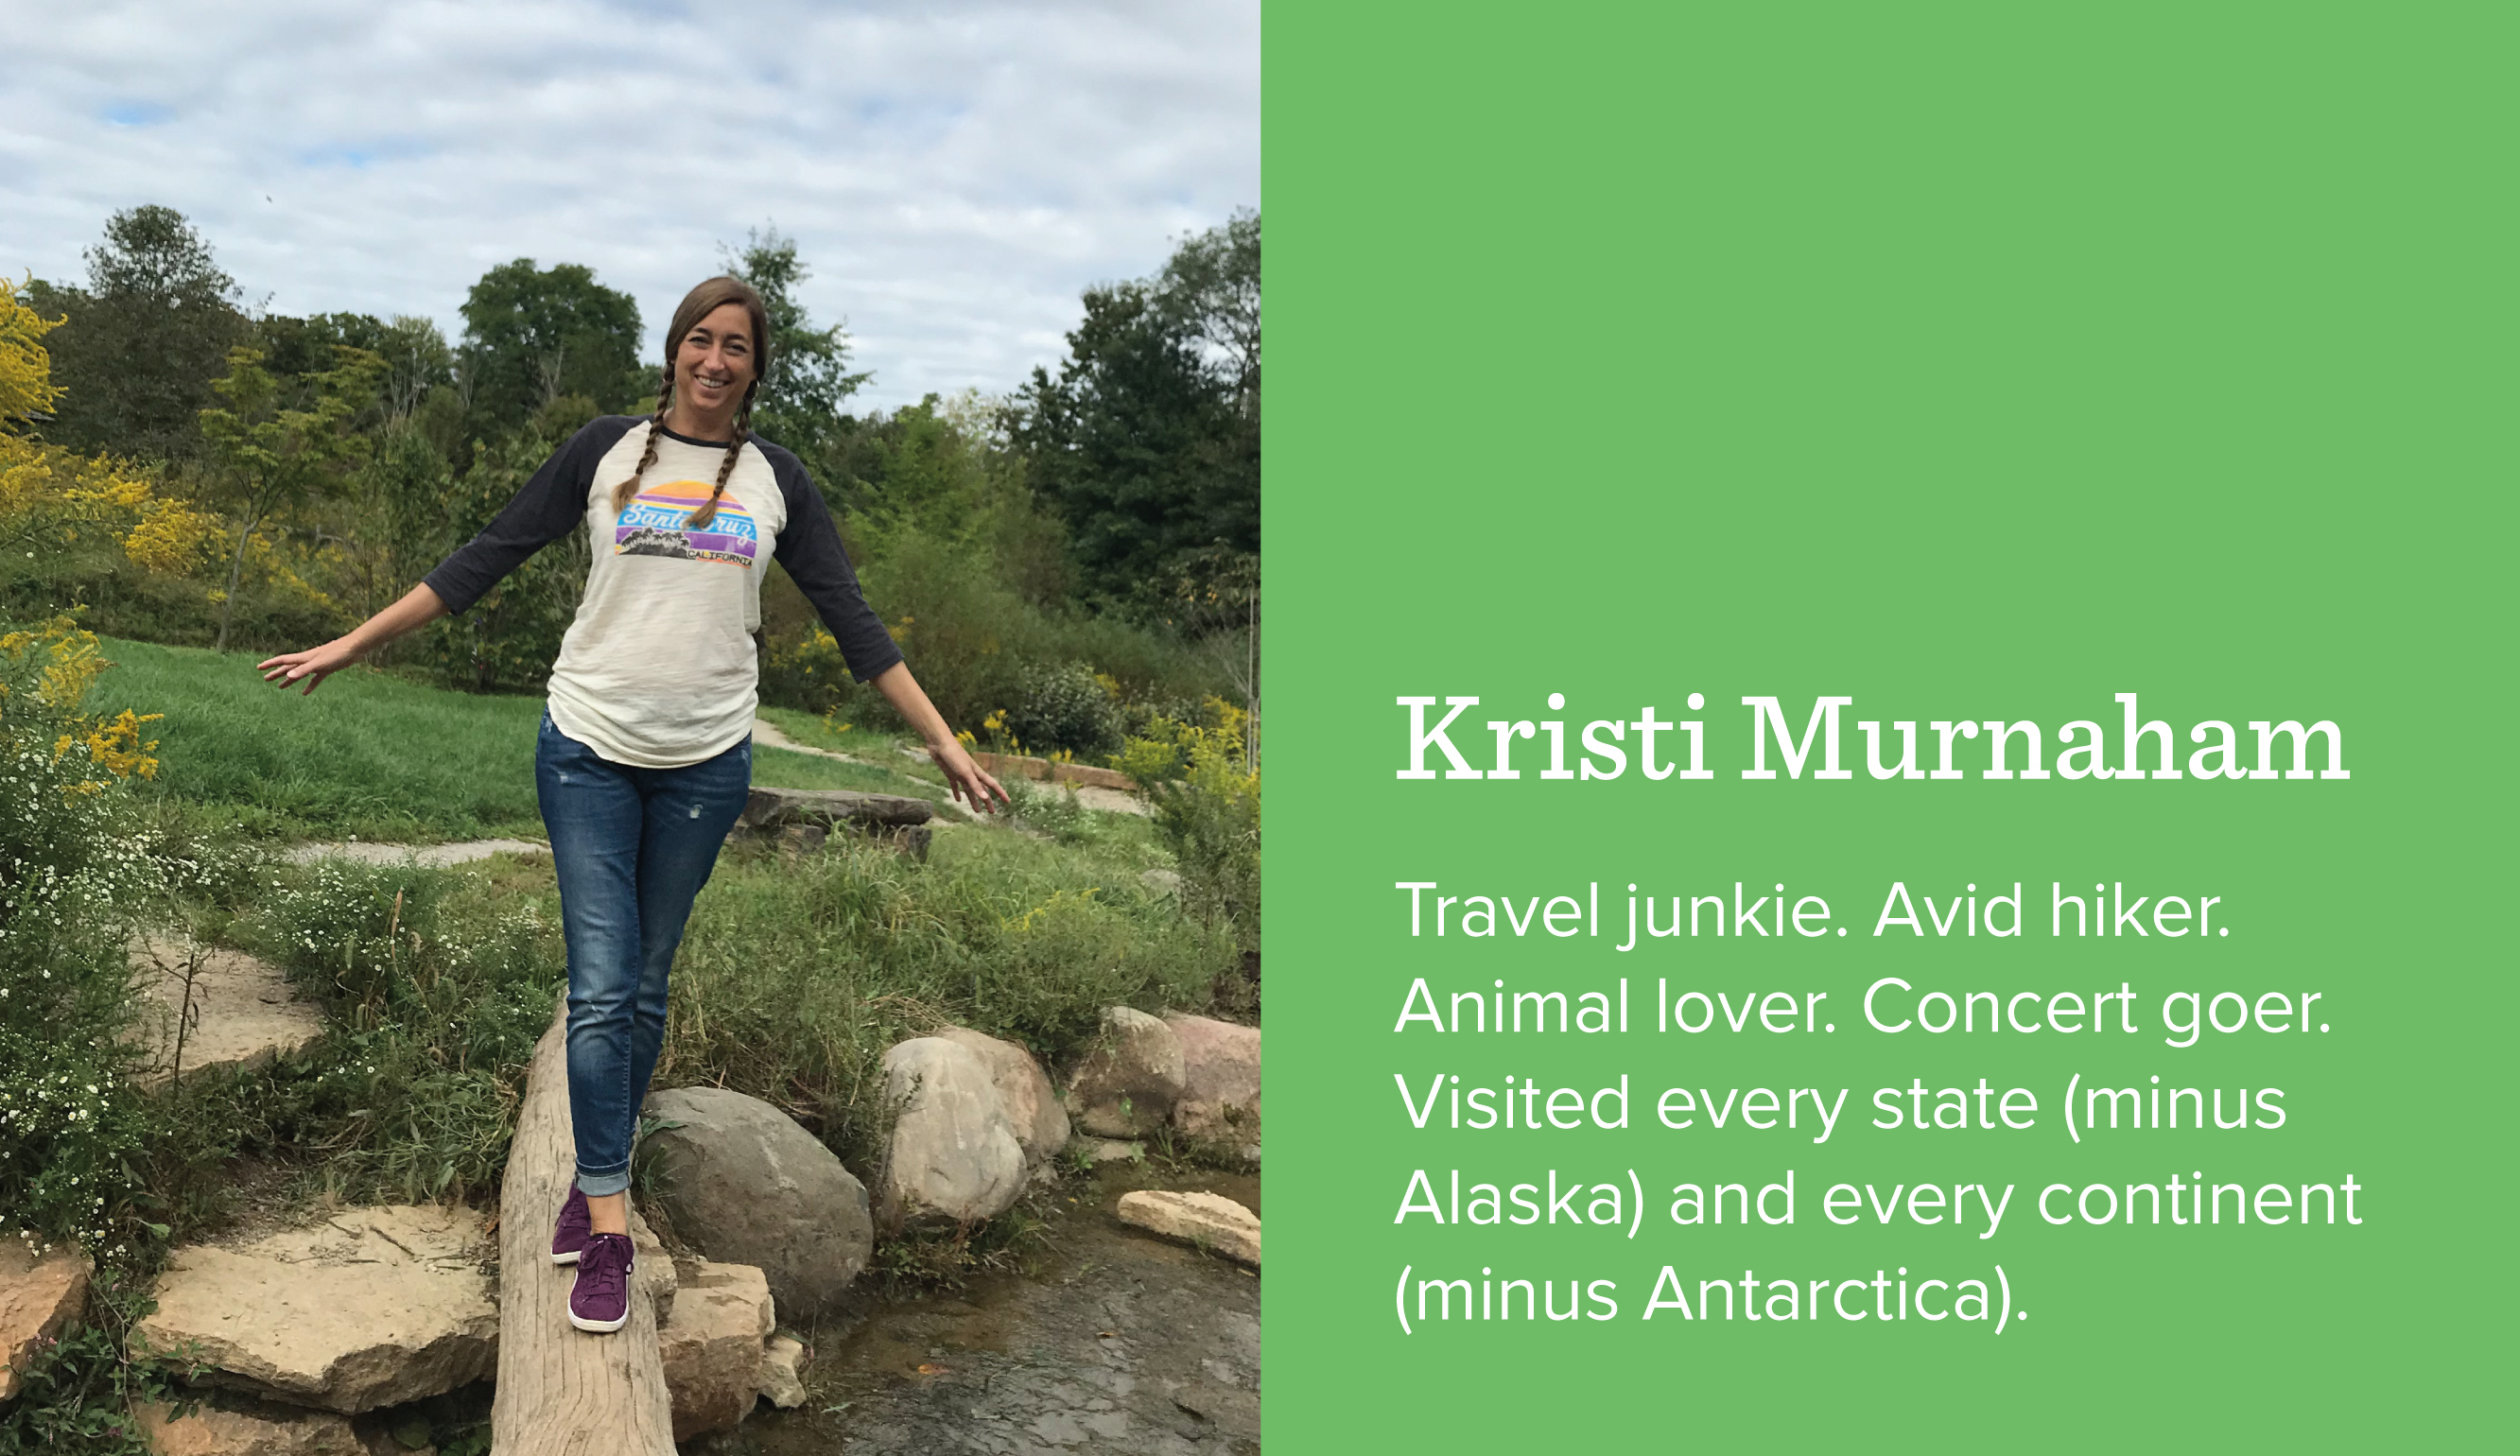 Kristi Murnahan. Travel junkie. Avid hiker. Animal lover. Concert goer. Visited every state (minus Alaska) and every continent (minus Antarctica).